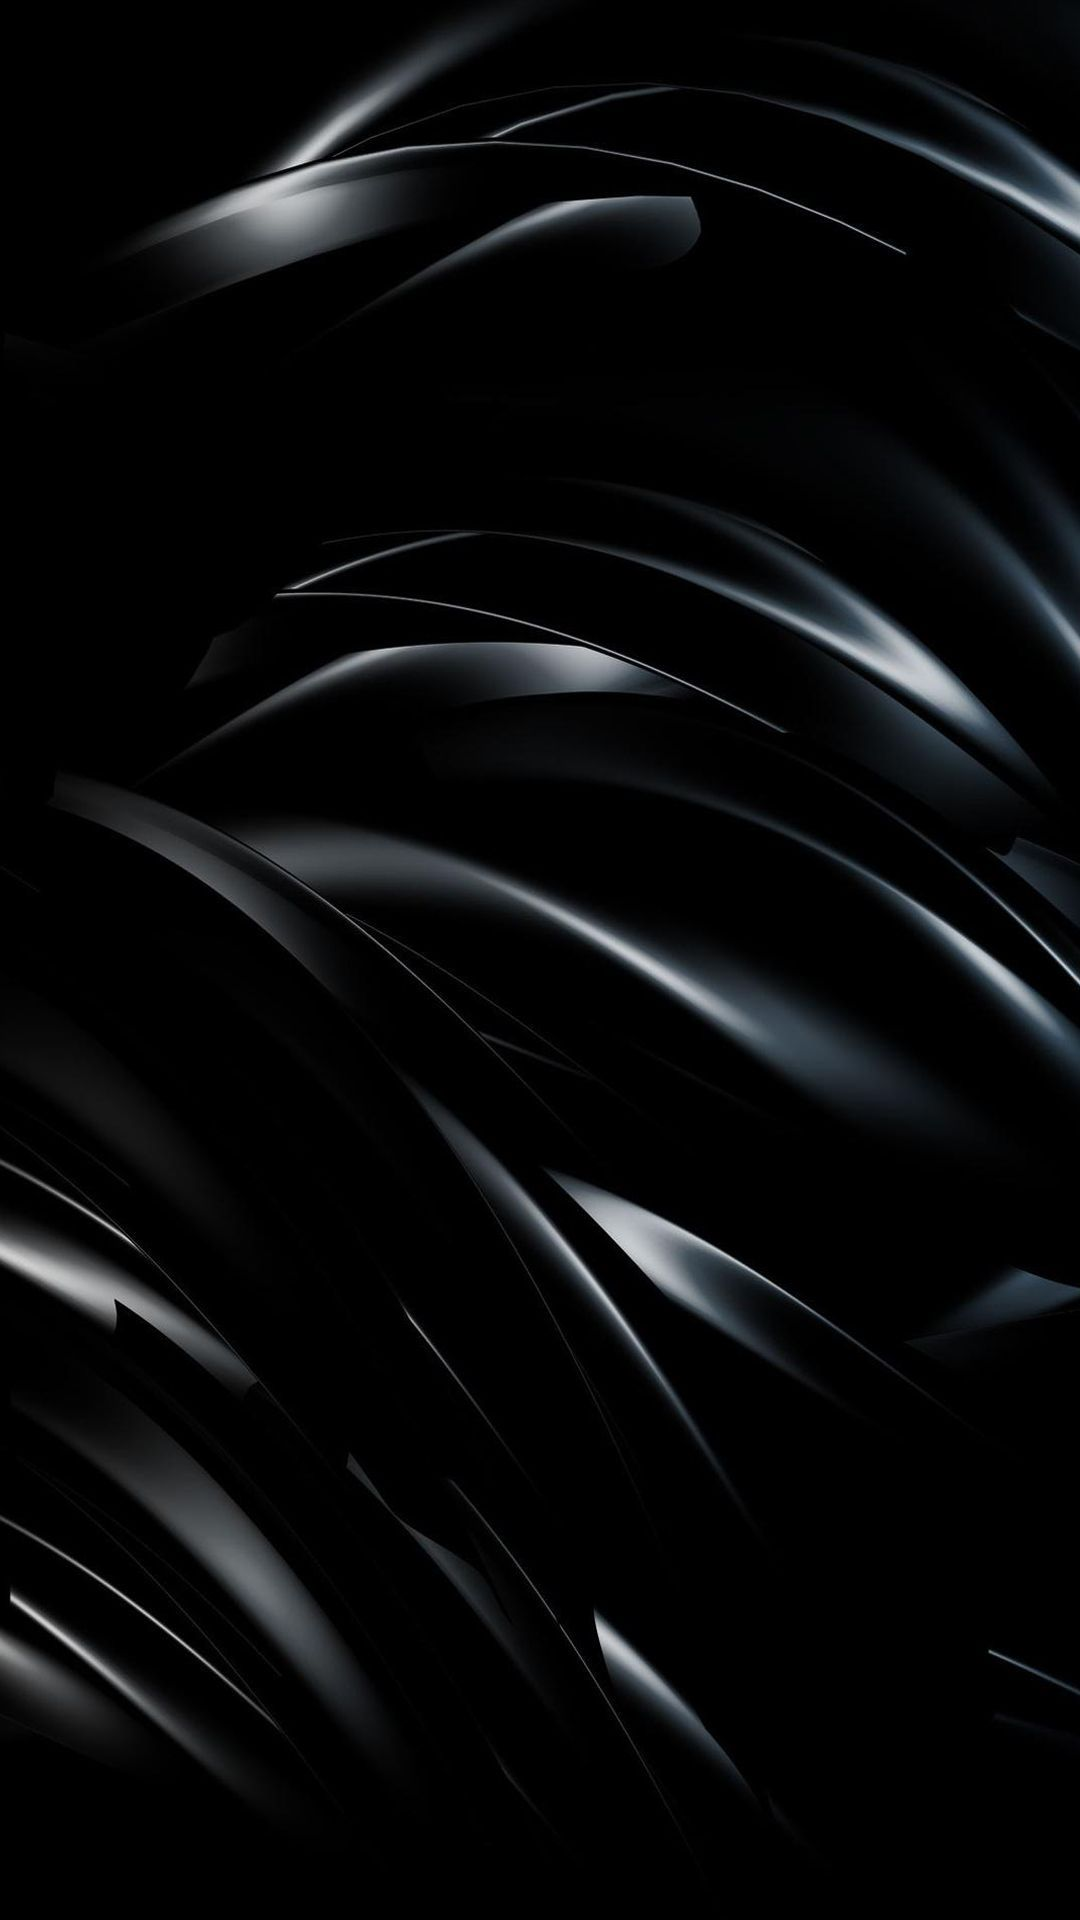 Download Latest Black Wallpaper For Iphone Today Live Wallpaper Iphone Iphone 7 Plus Wallpaper Free Live Wallpapers